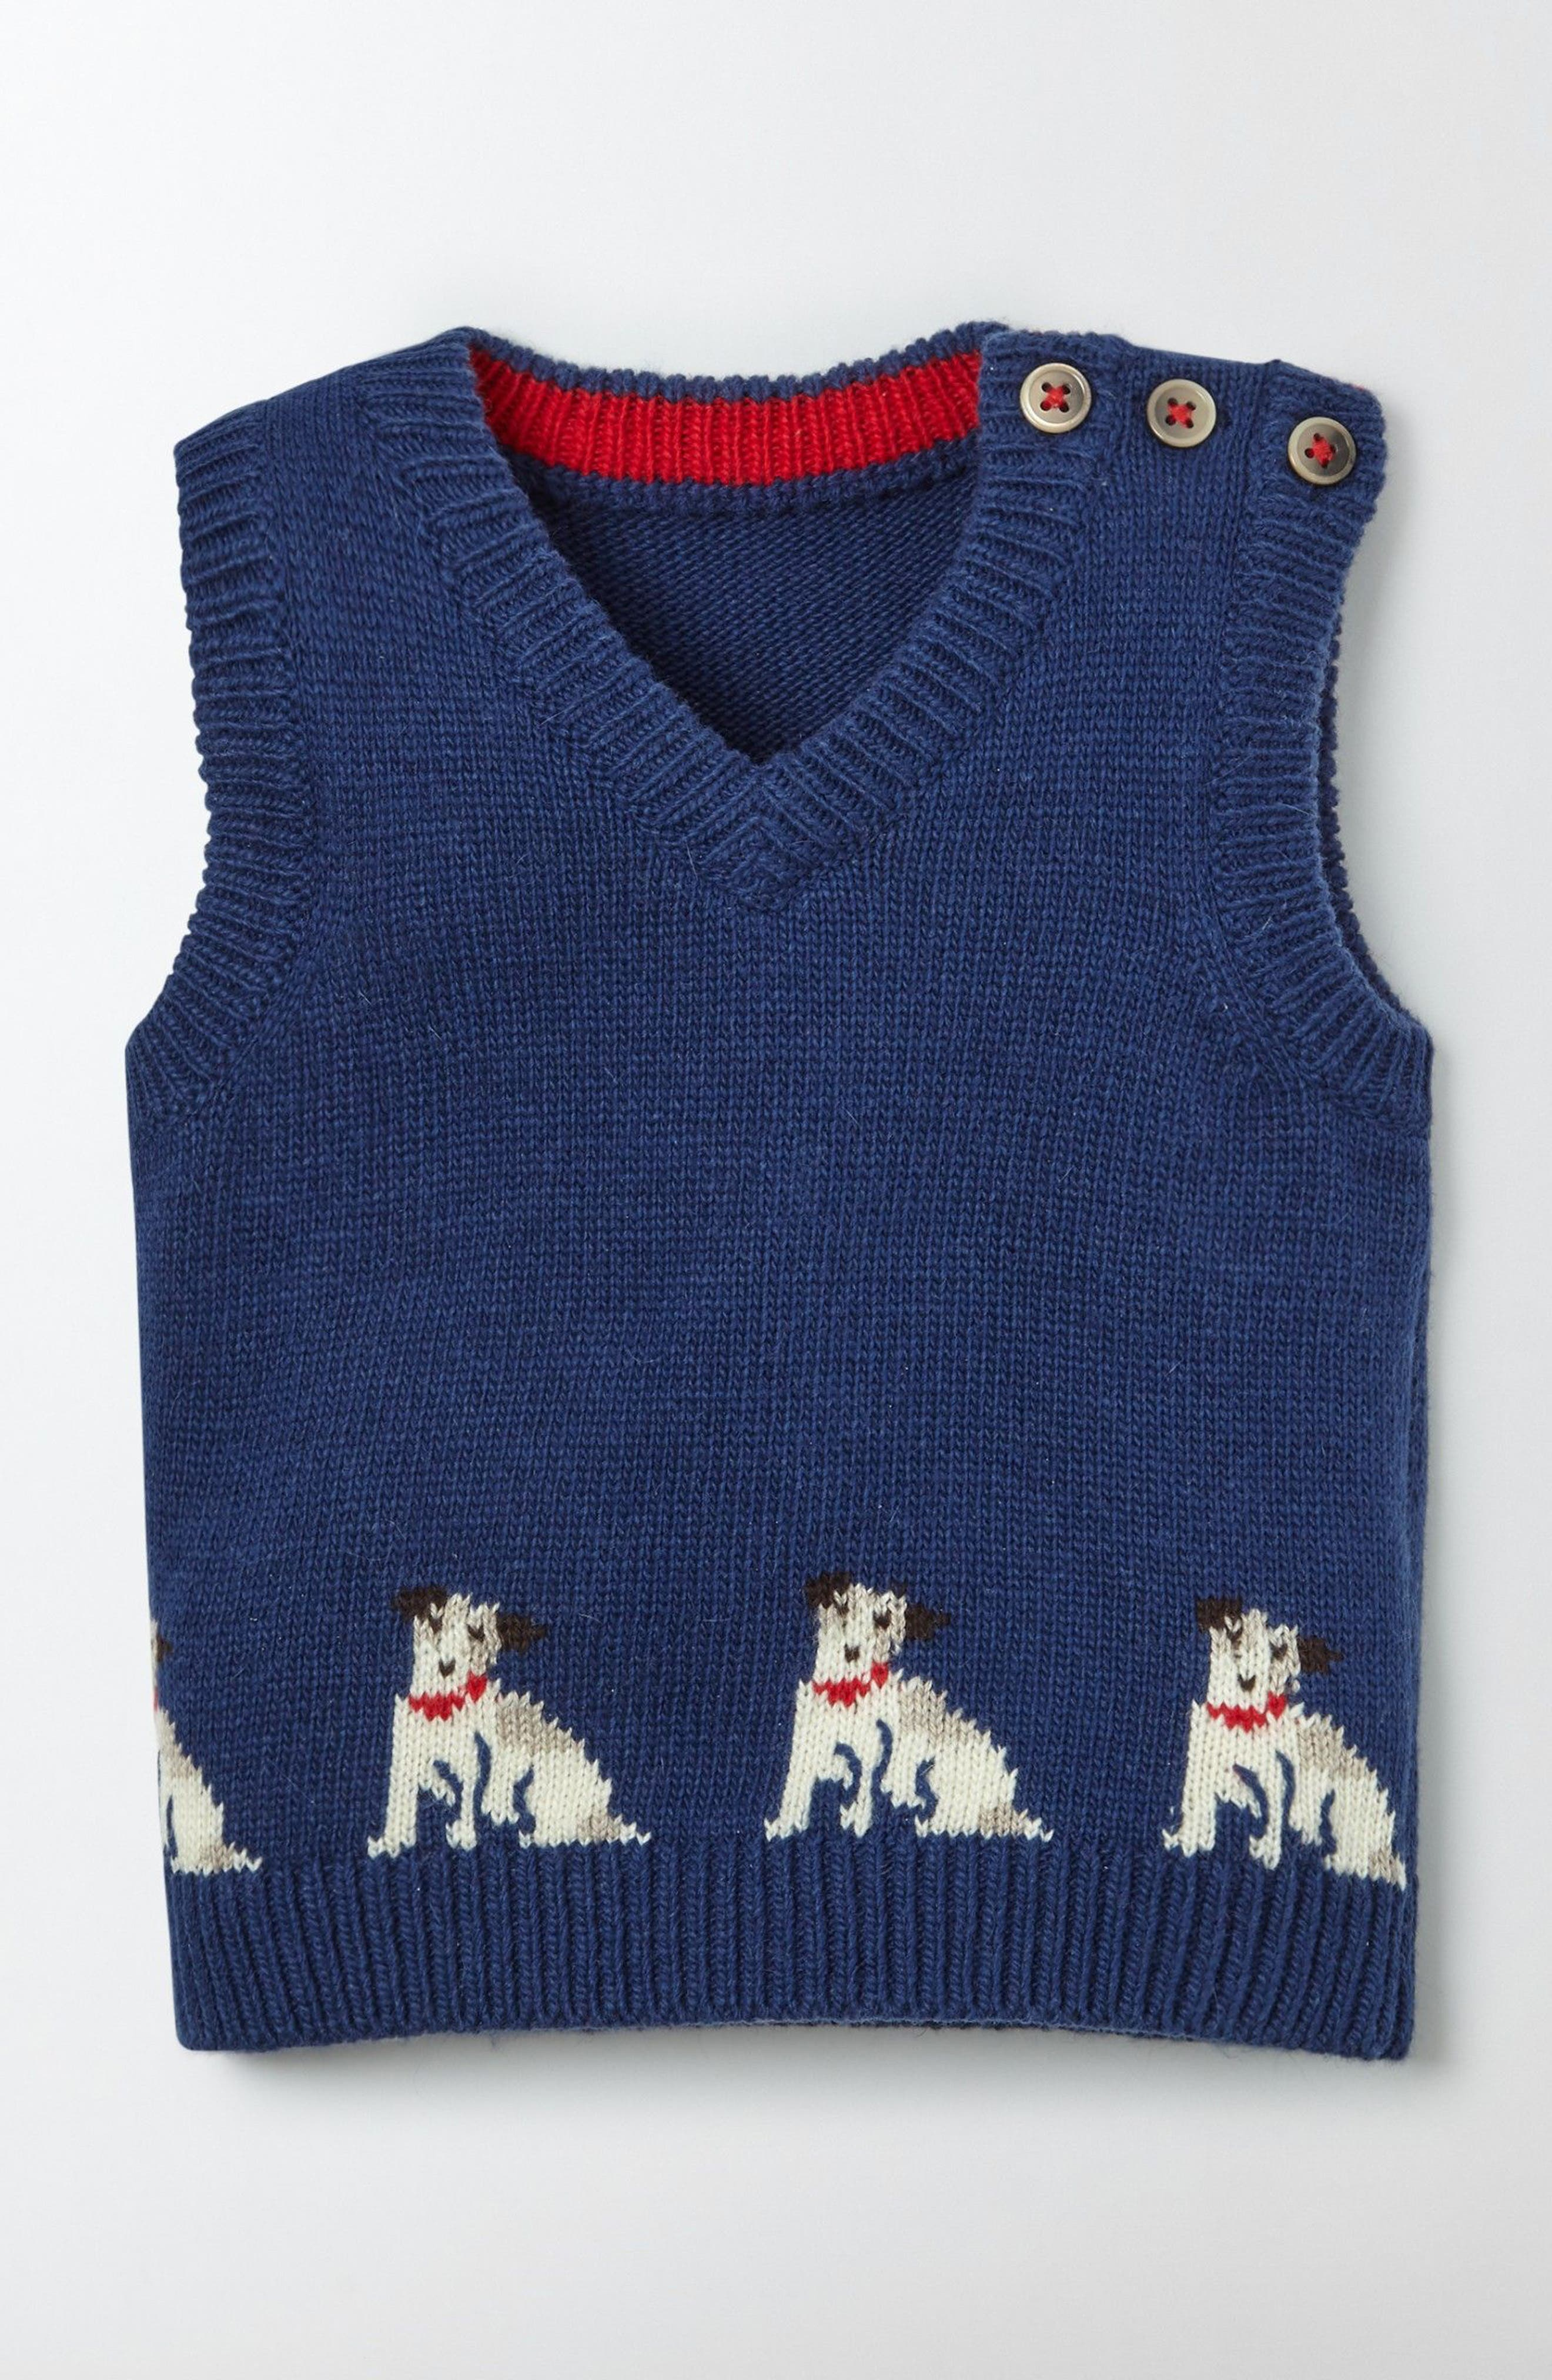 MINI BODEN Sprout Knit Sweater Vest